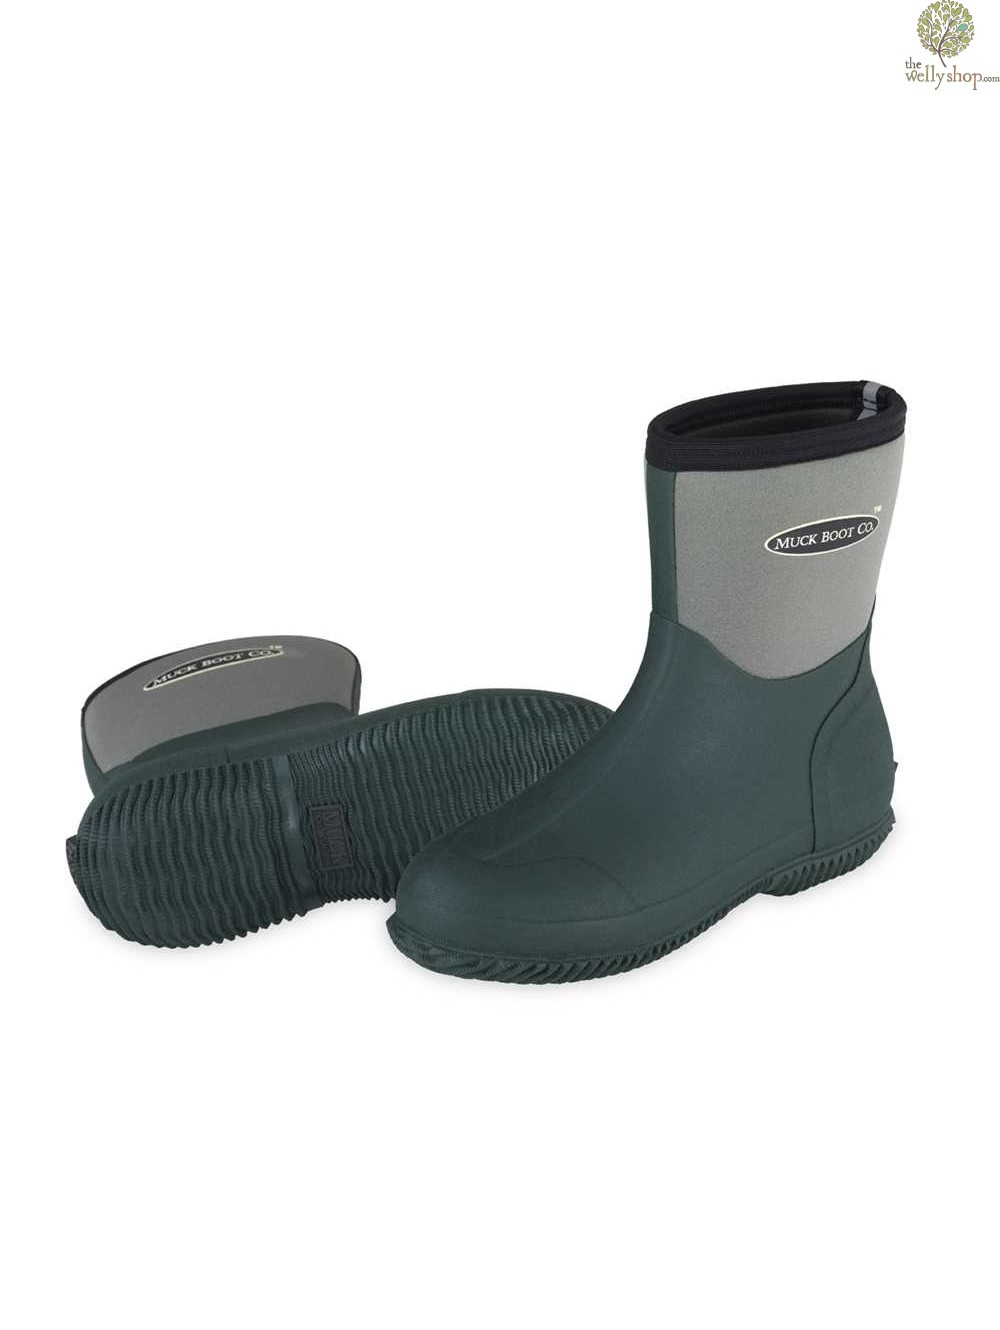 Muck Boot Ribble Shorty Neoprene Wellington Boots | Muck Boots | Brand